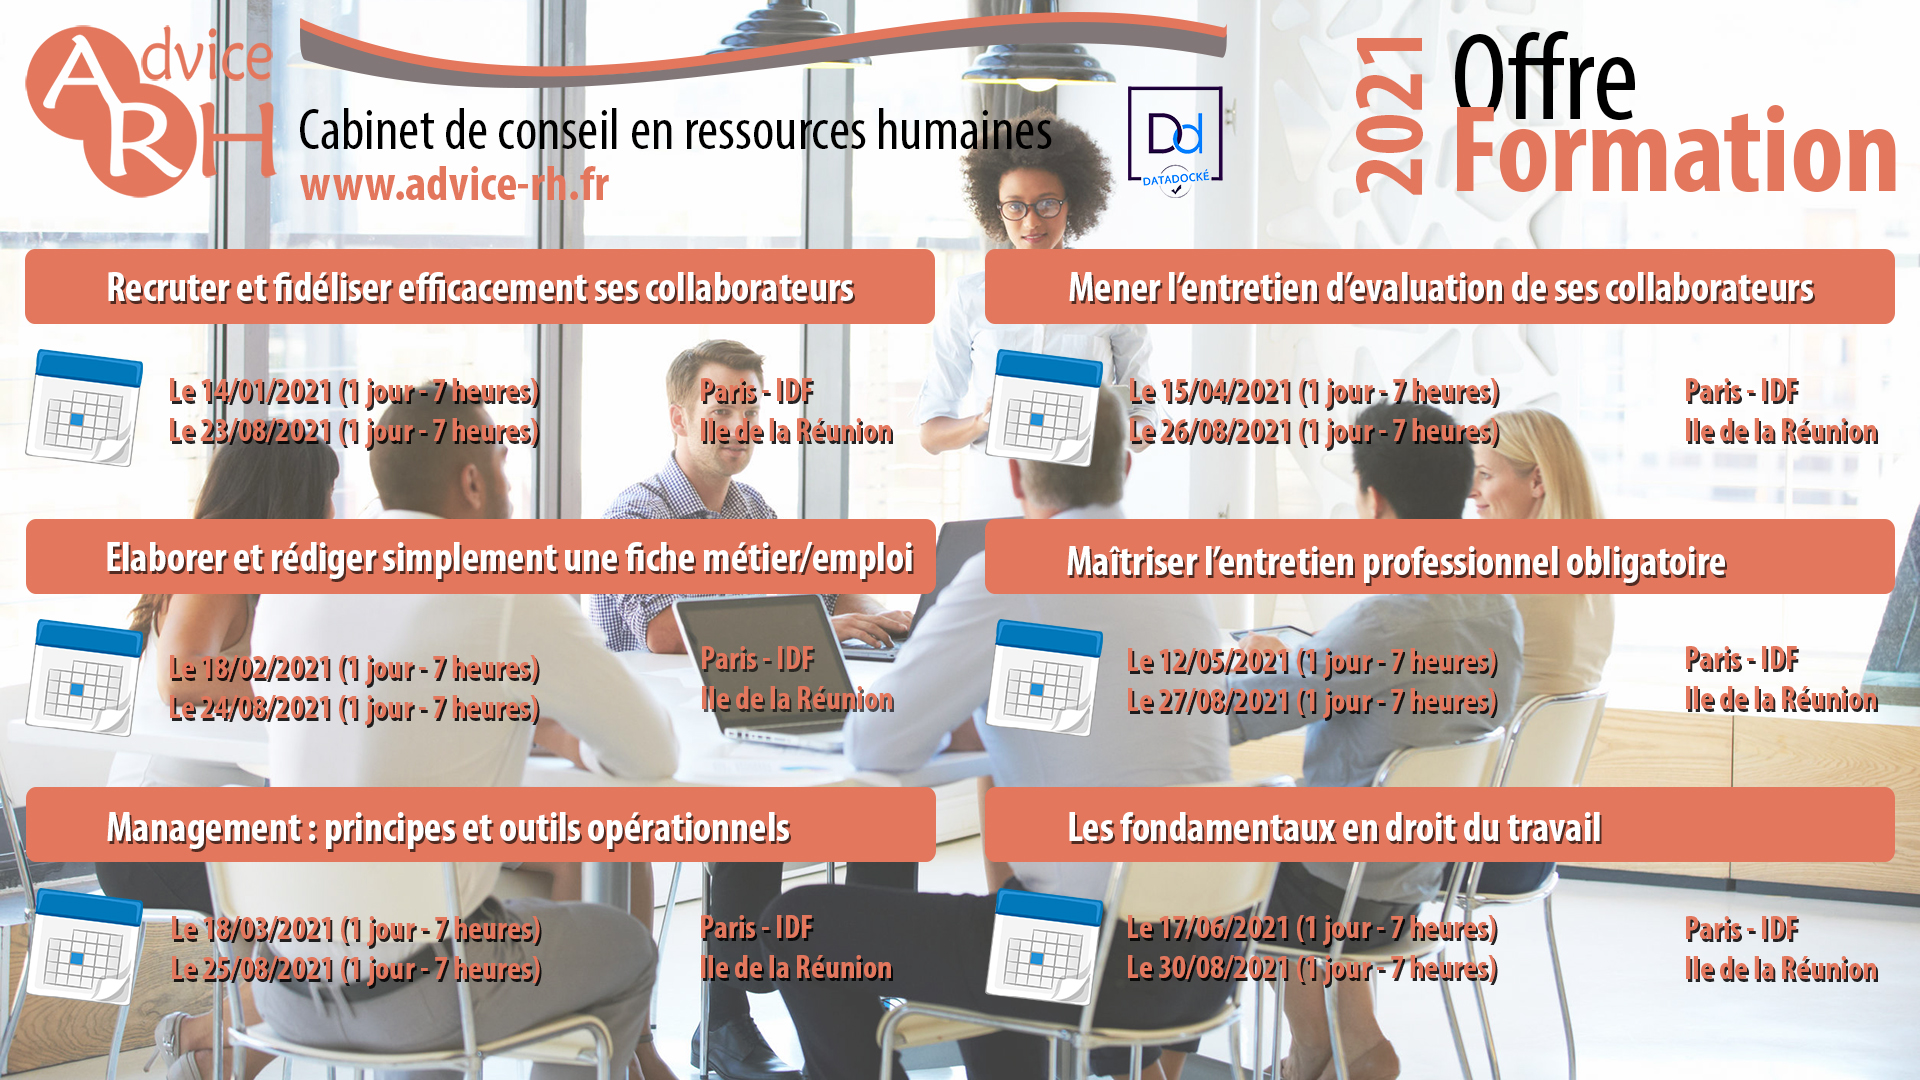 Advice RH - Offre formation 2021